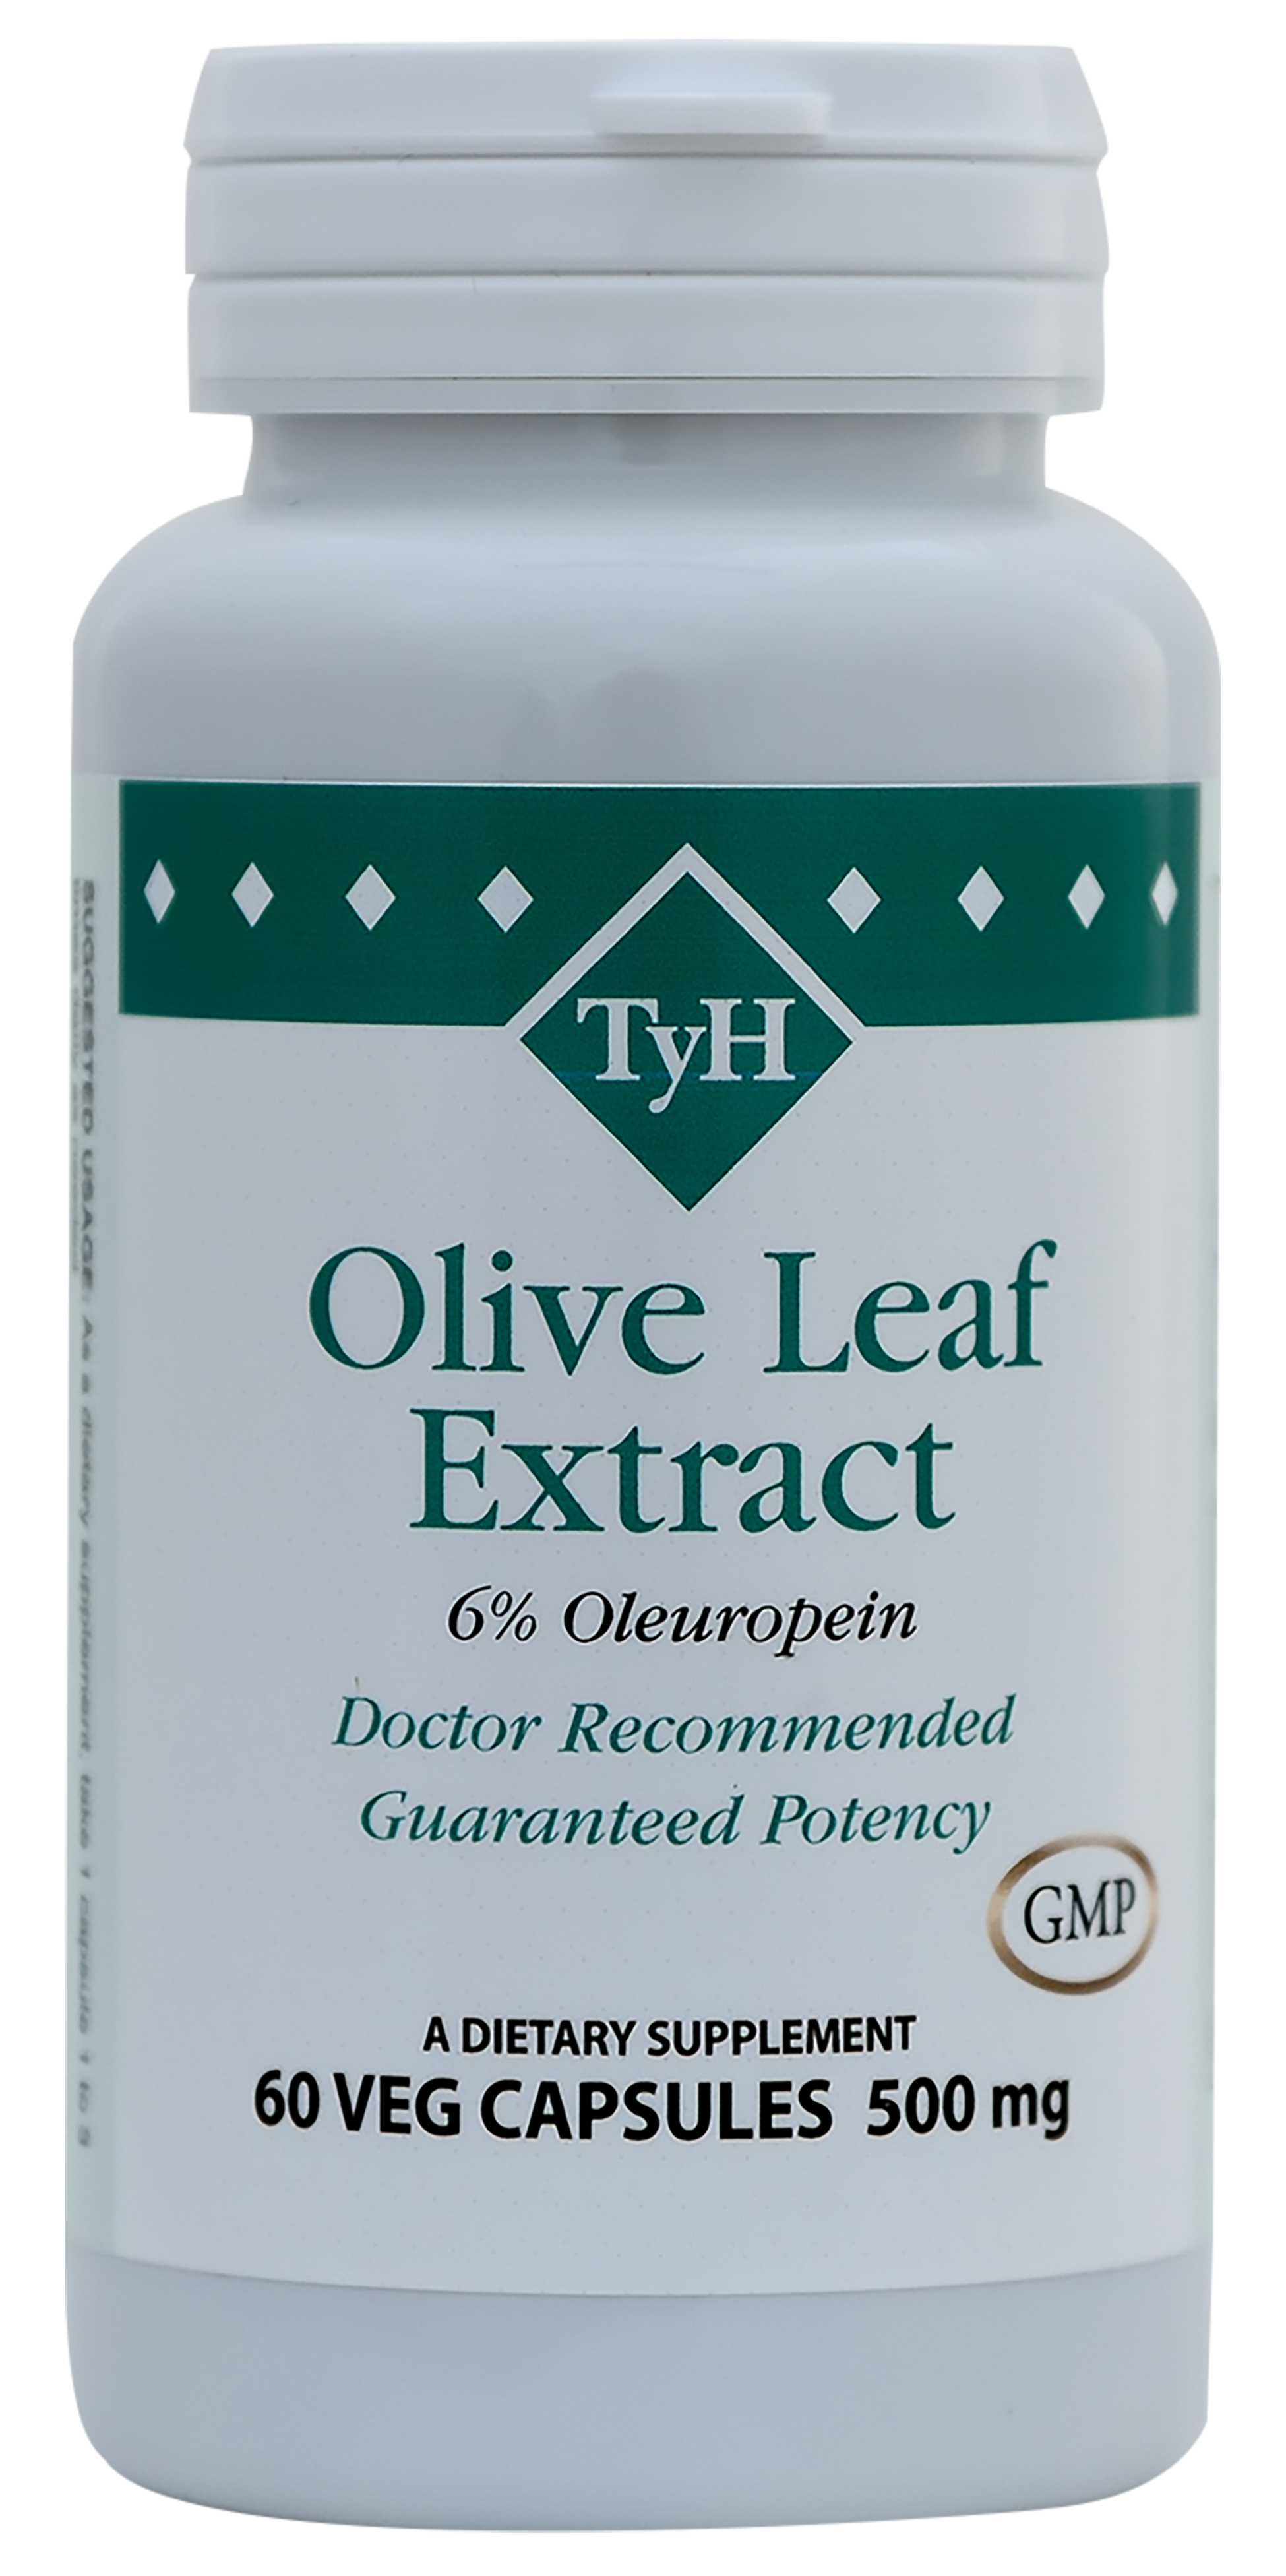 Olive Leaf Extract 60 Veg Capsules